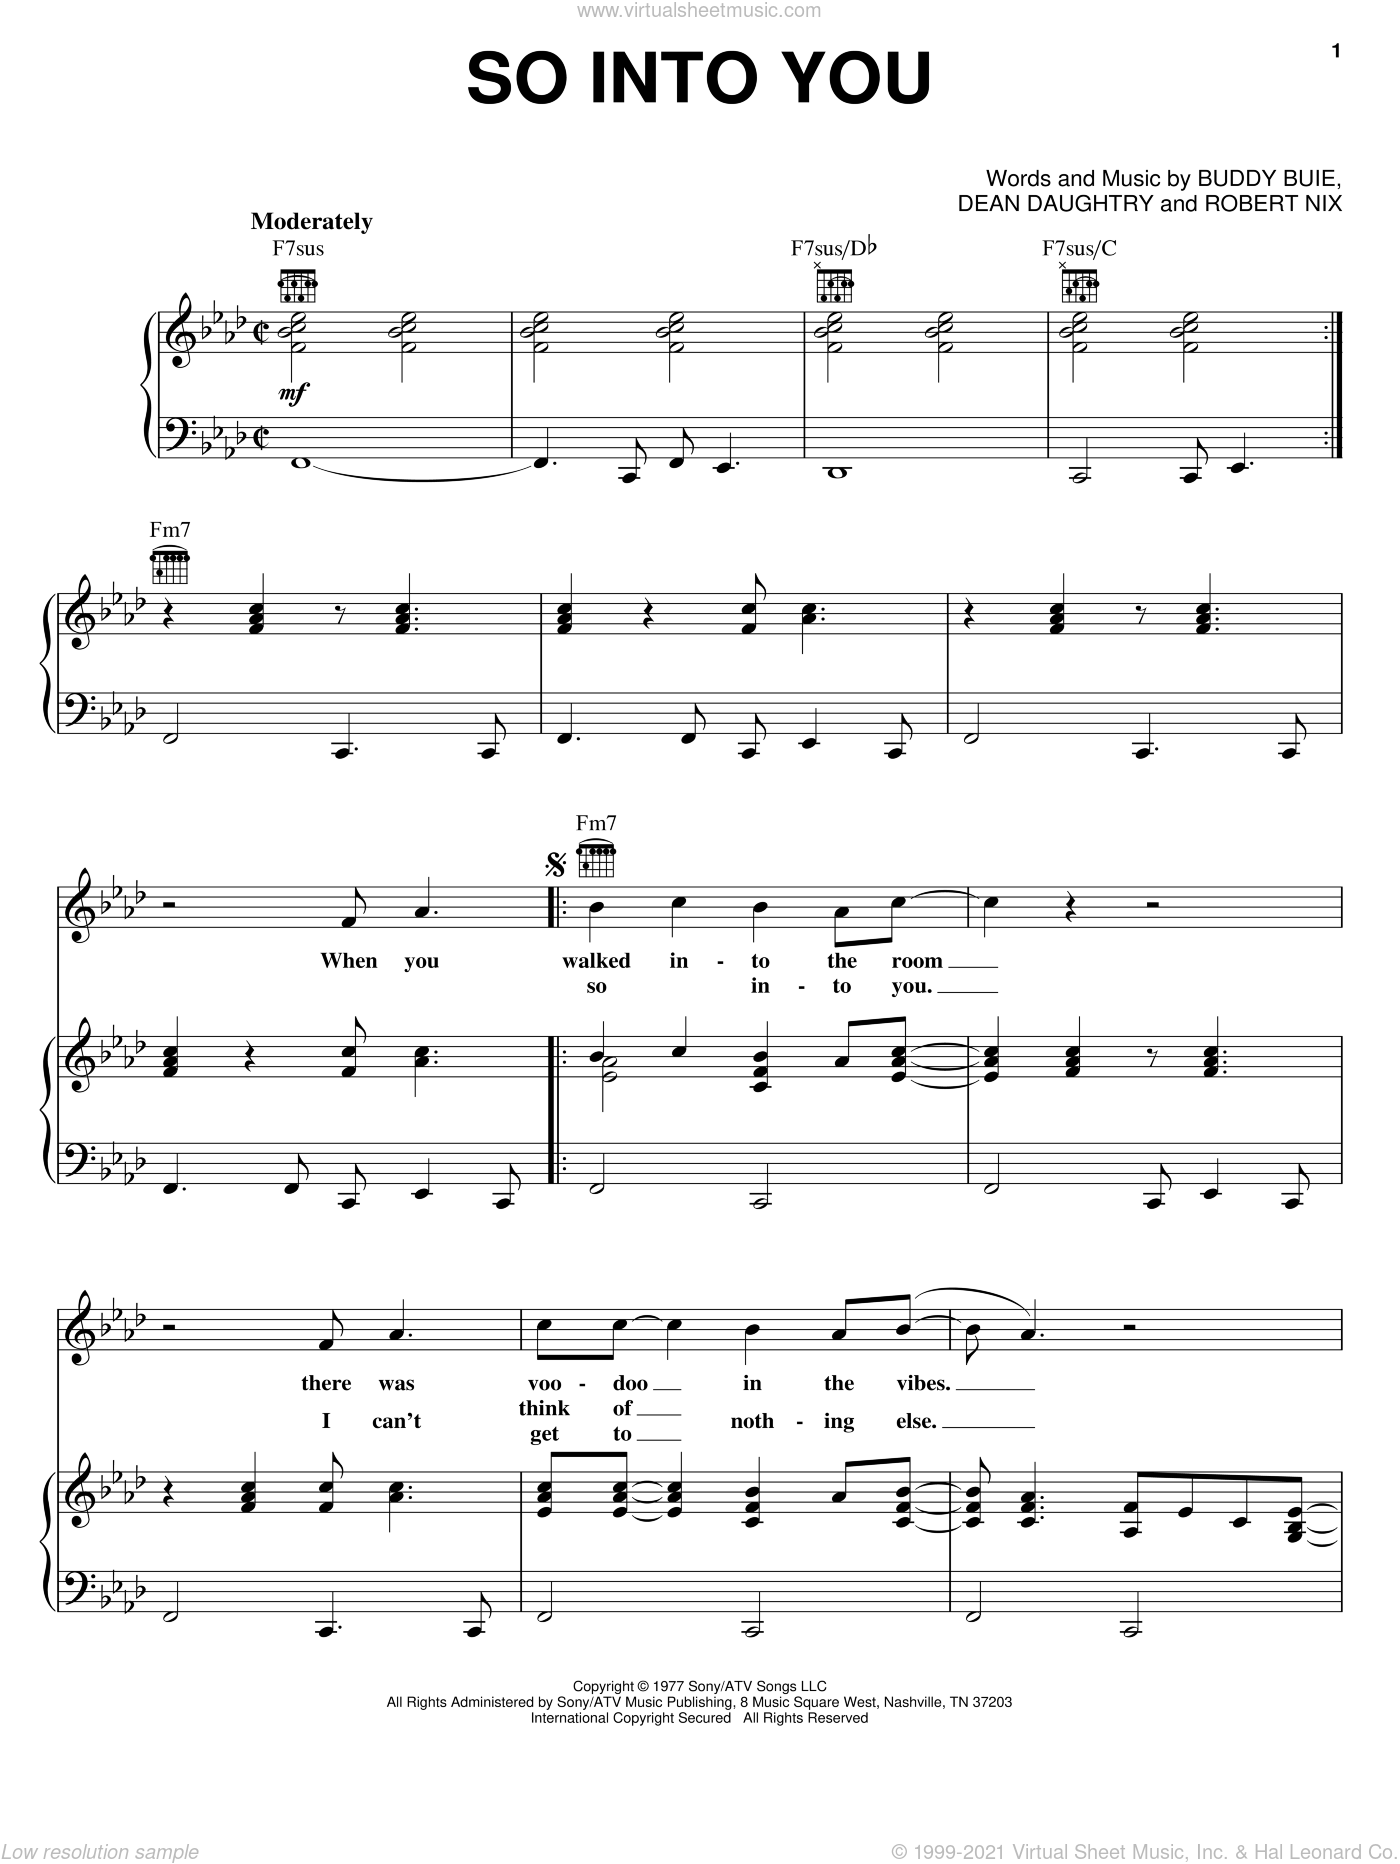 So Into You sheet music for voice, piano or guitar by Robert Nix